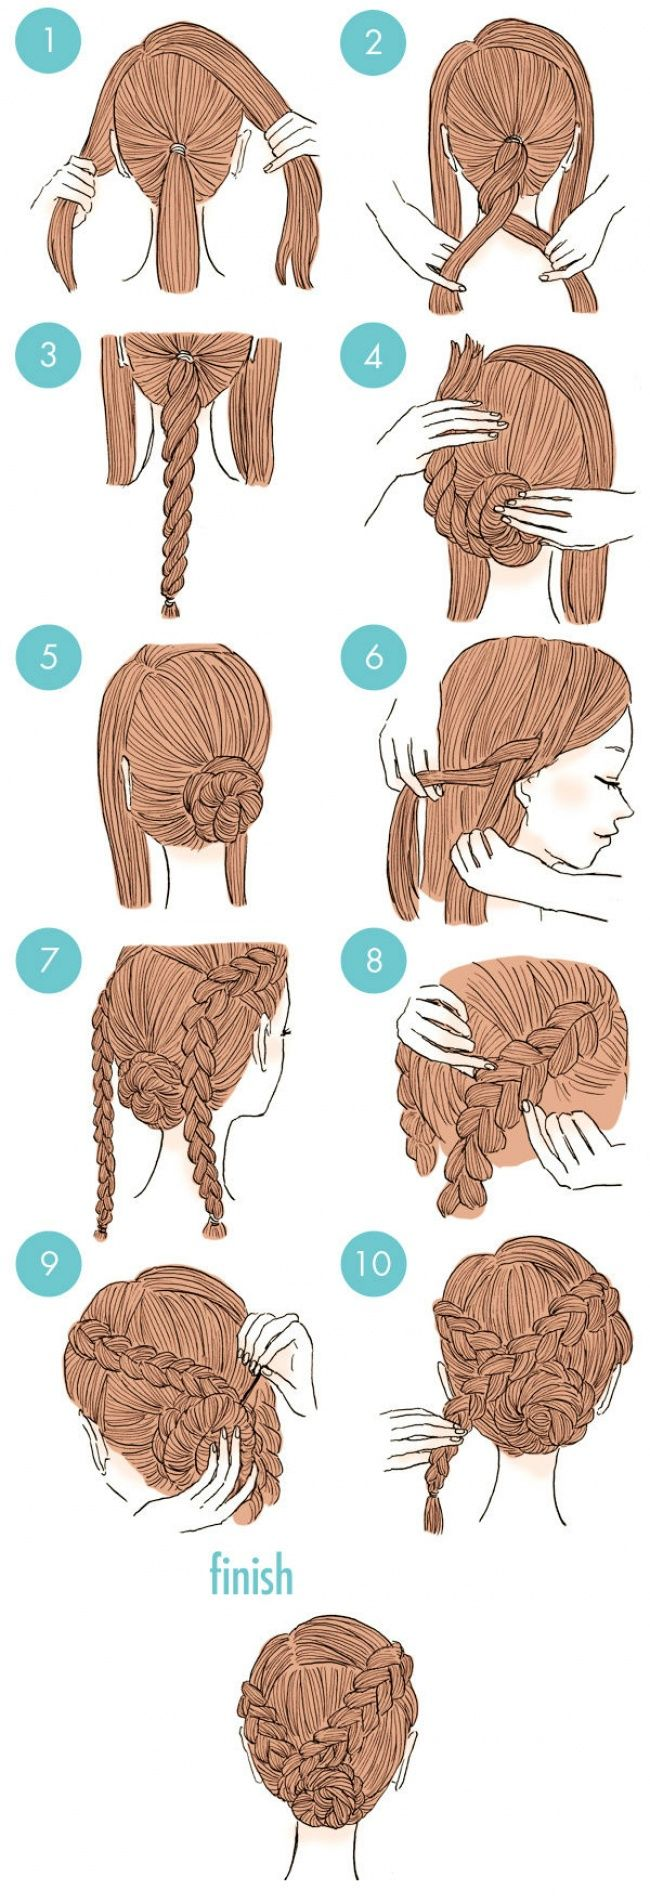 20 Easy And Cute Hairstyles That Can Be Done In Just A Few Minutes                                                                                                                                                     More